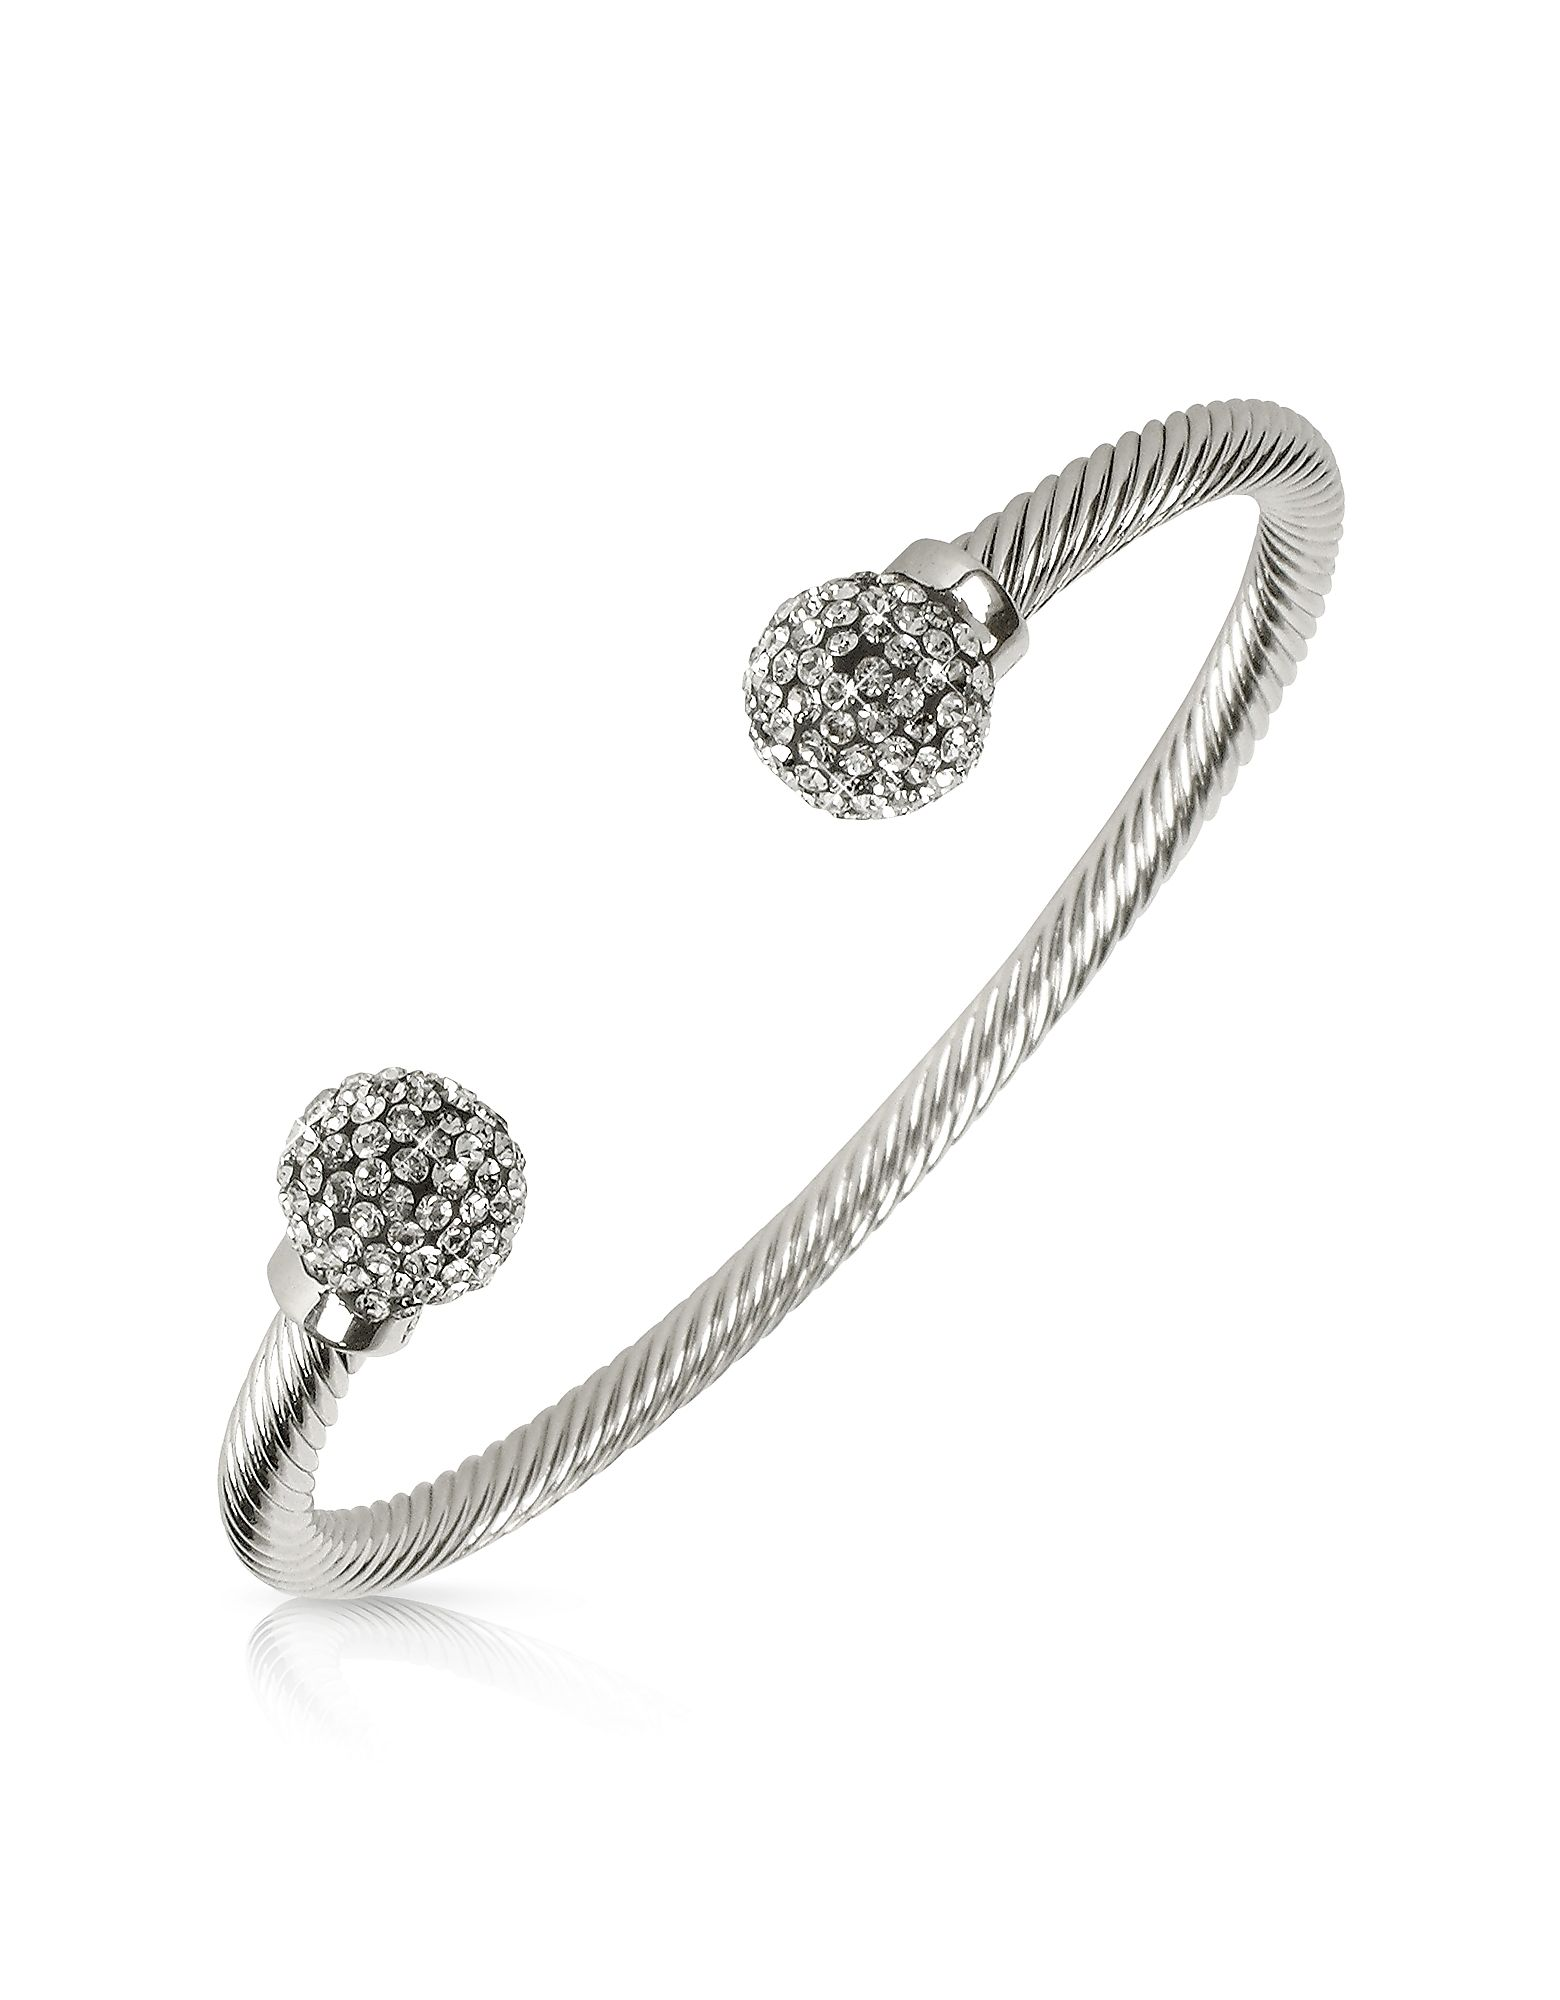 An elegant round band finished with crystal-laden spheres, this bracelet is fit for the queen of the ball. Manufactured in a patented jewelry alloy and resin. Signature box included. Swiss made. #Jewelry #fashion #style #women